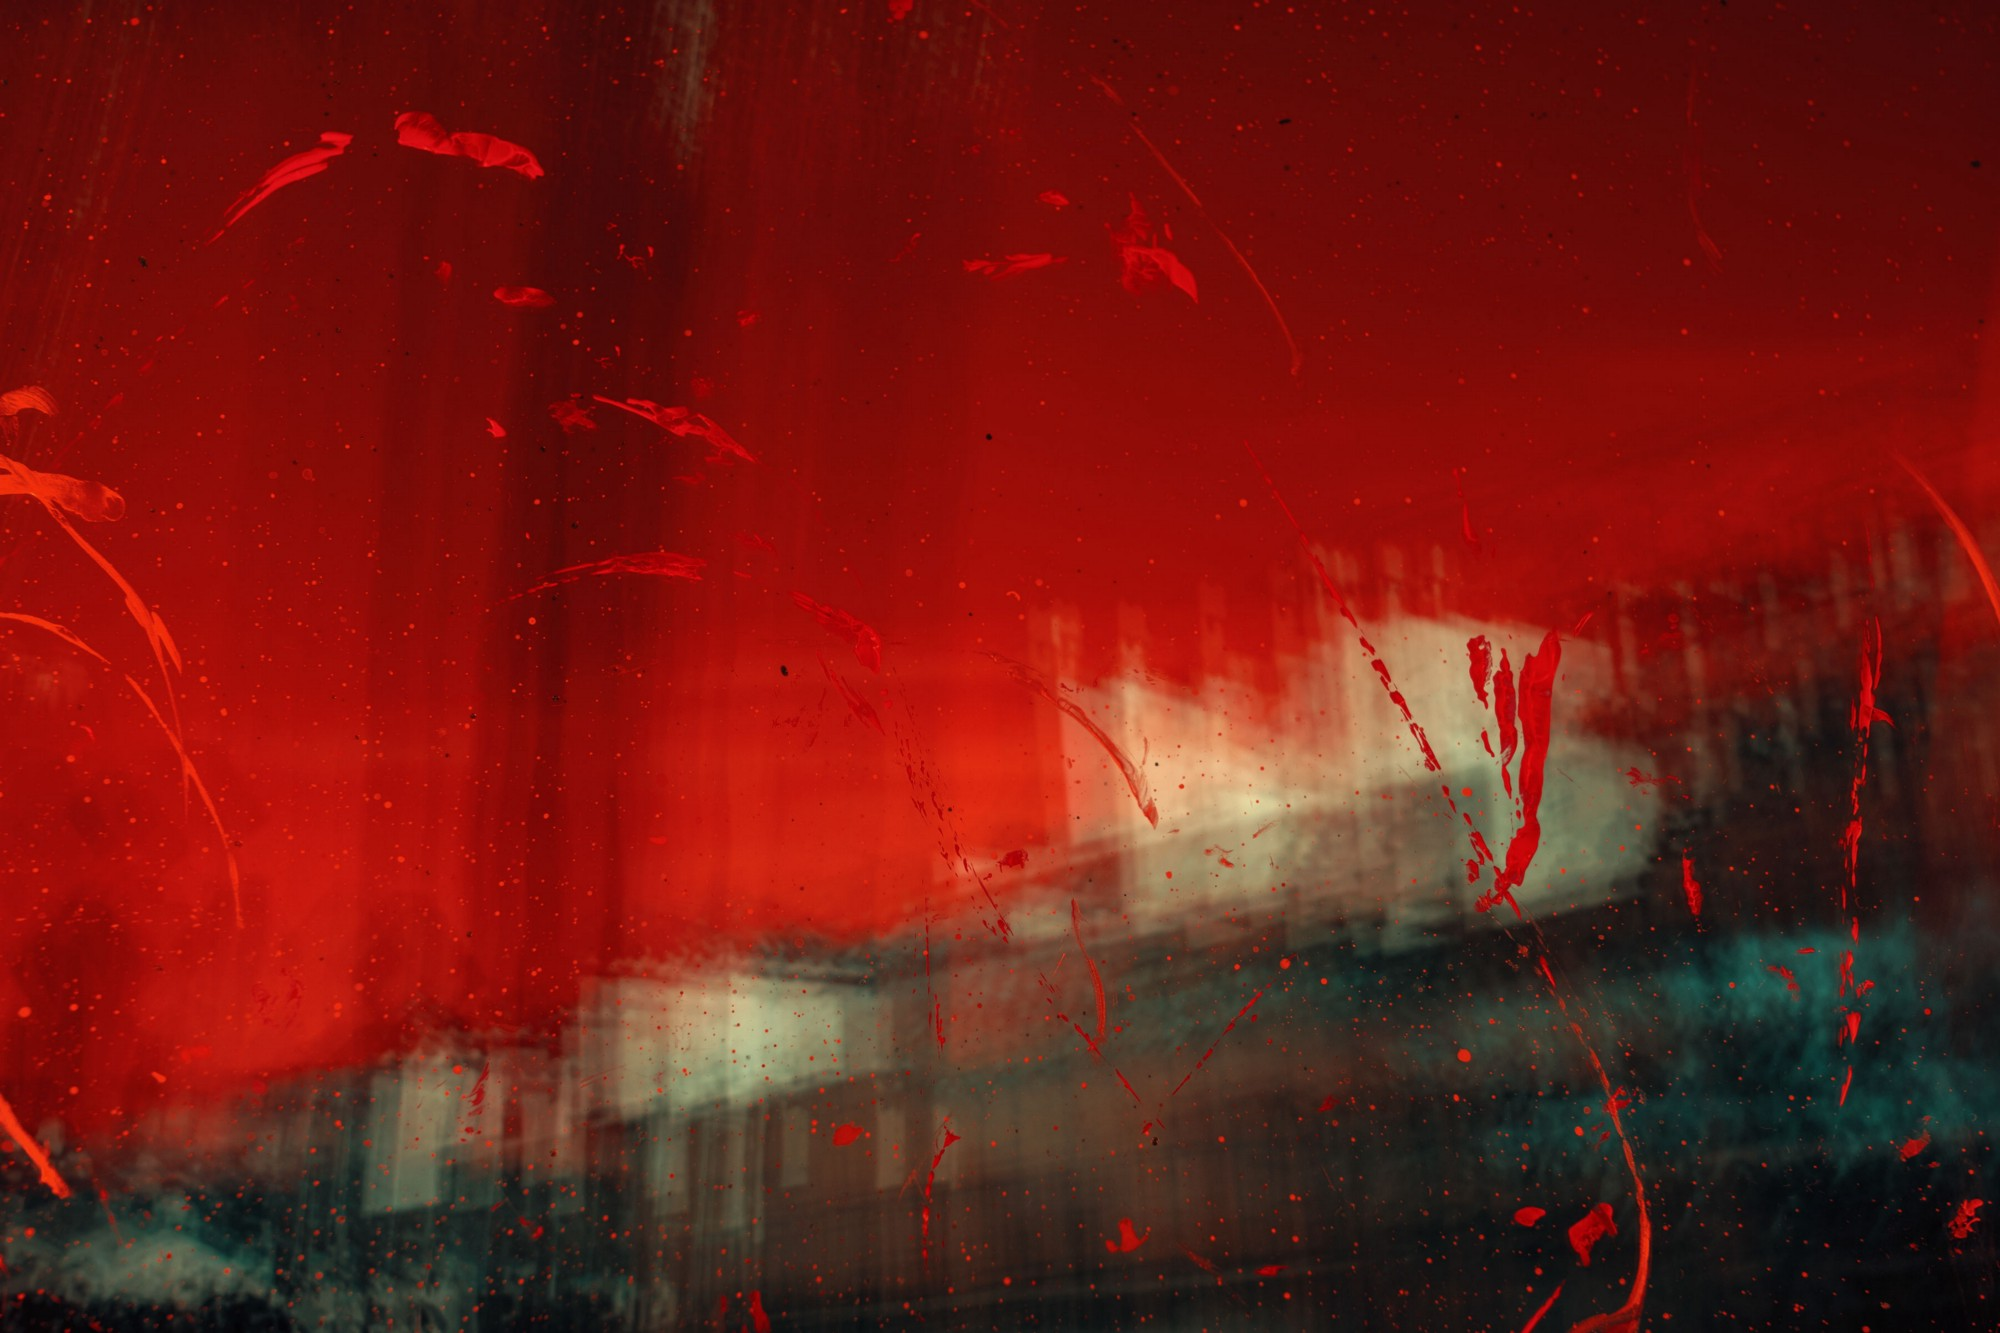 abstract surreal landscape red dark